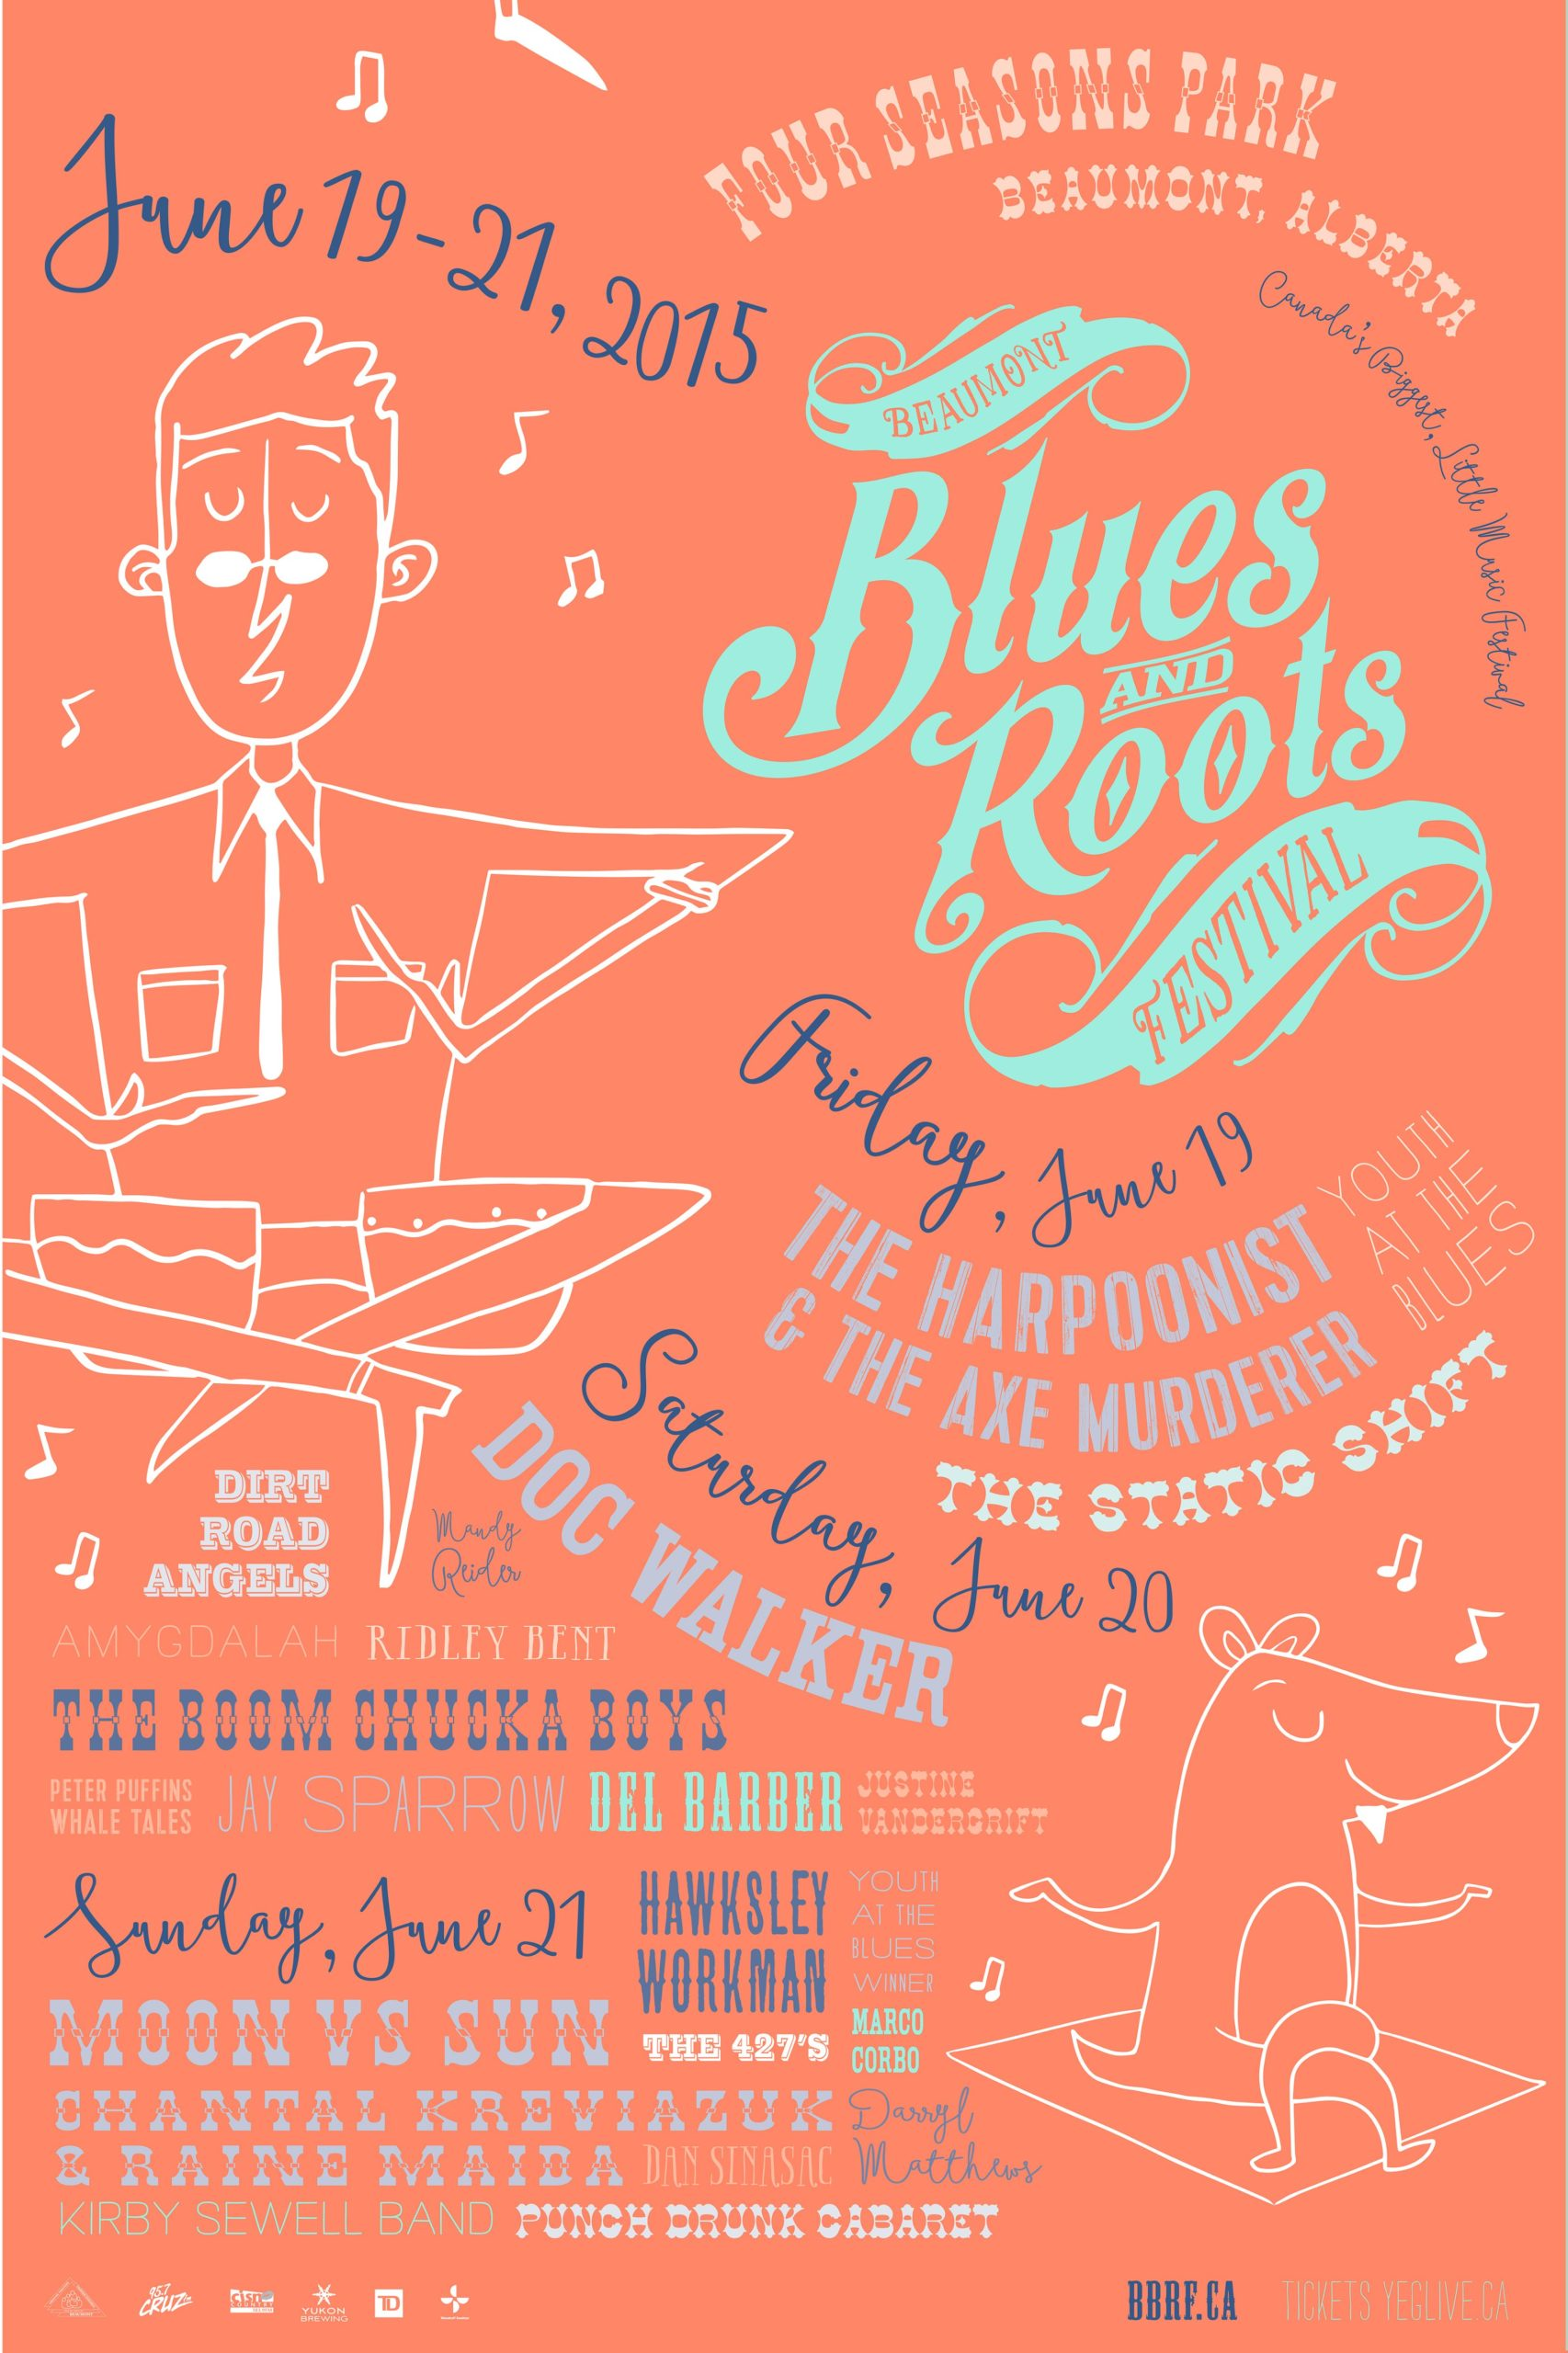 The Beaumont Blues & Roots Festival poster 2015 orange